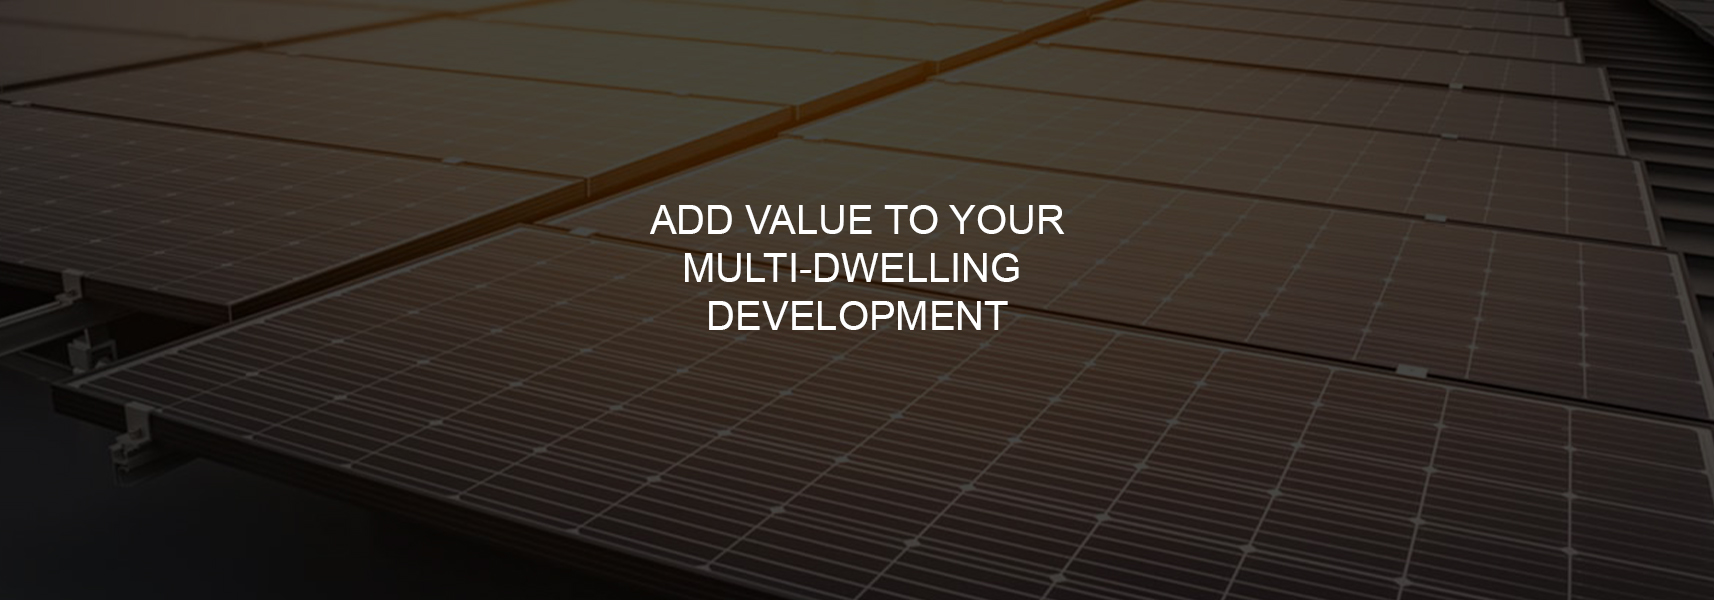 Add value to your multi-dwelling development - featured image